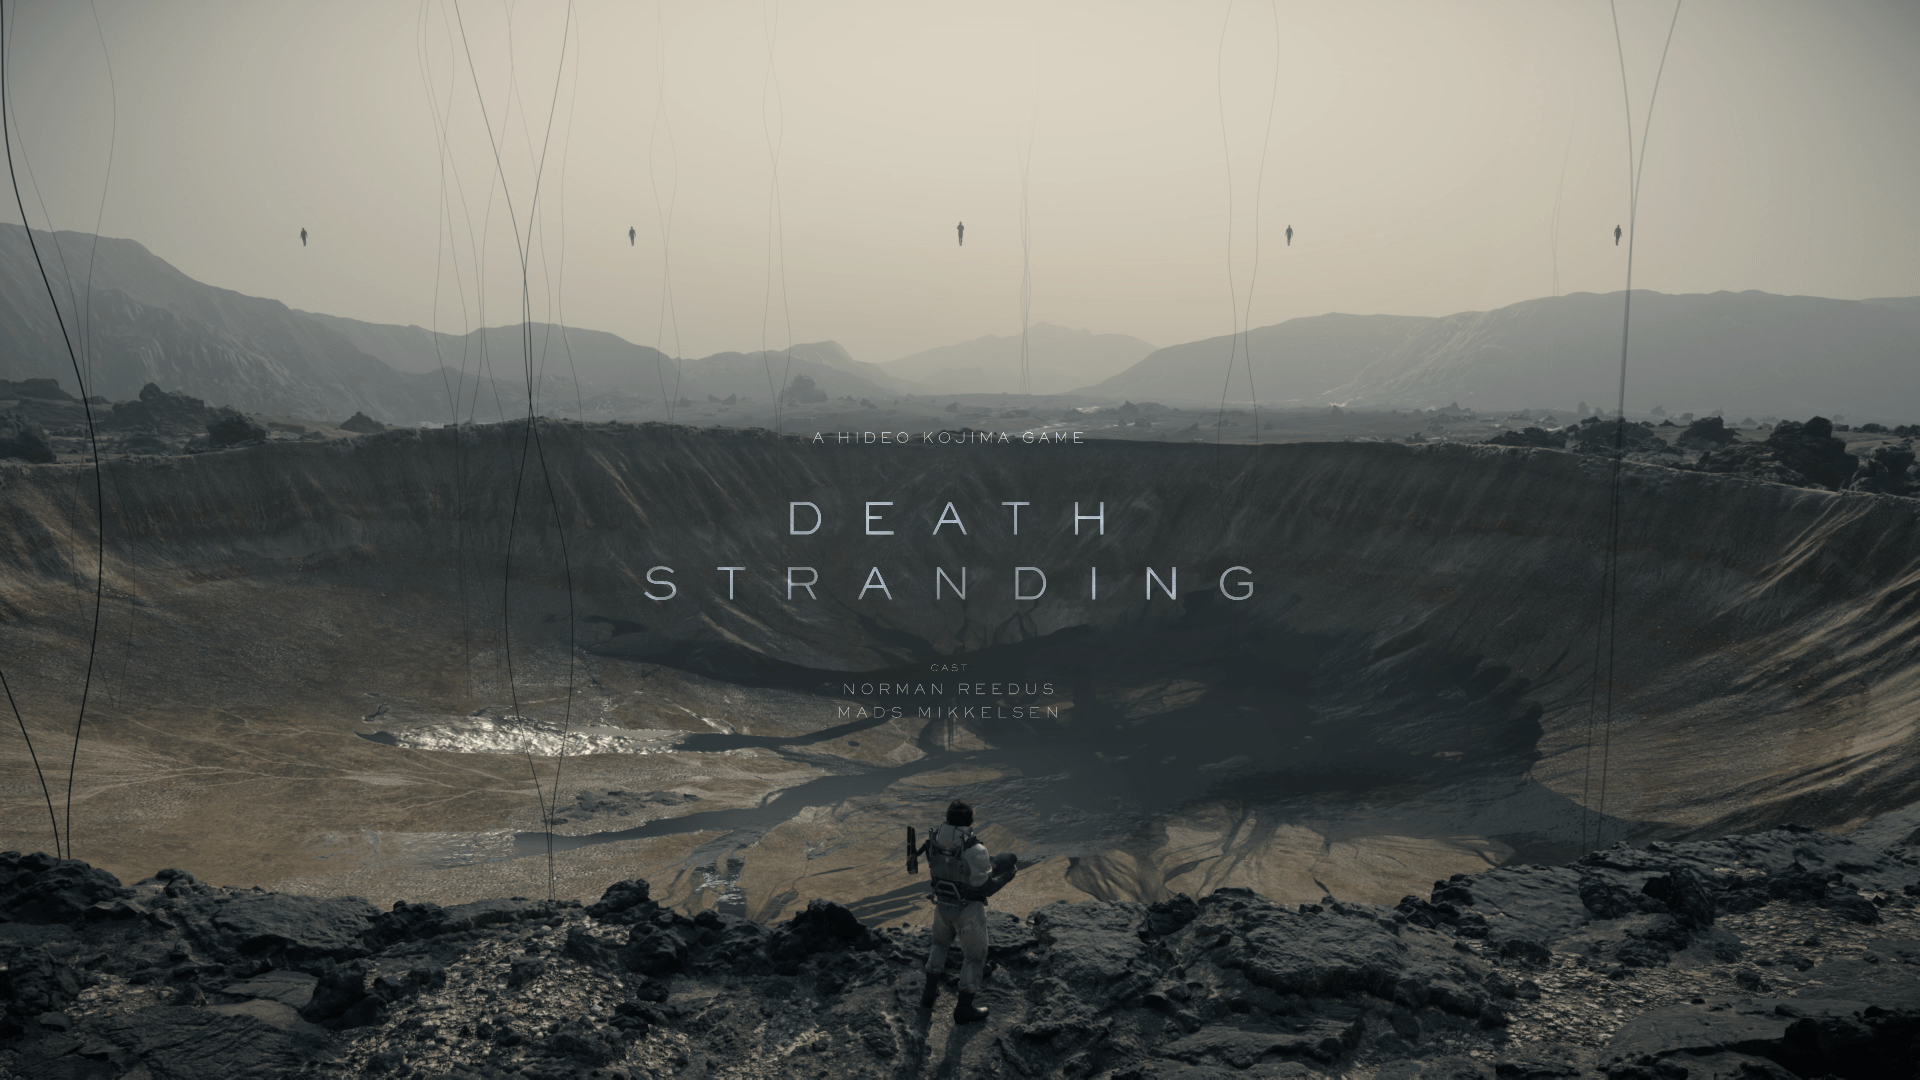 Epic Movie Hd Wallpapers Death Stranding New Trailer Wallpaper Deathstranding